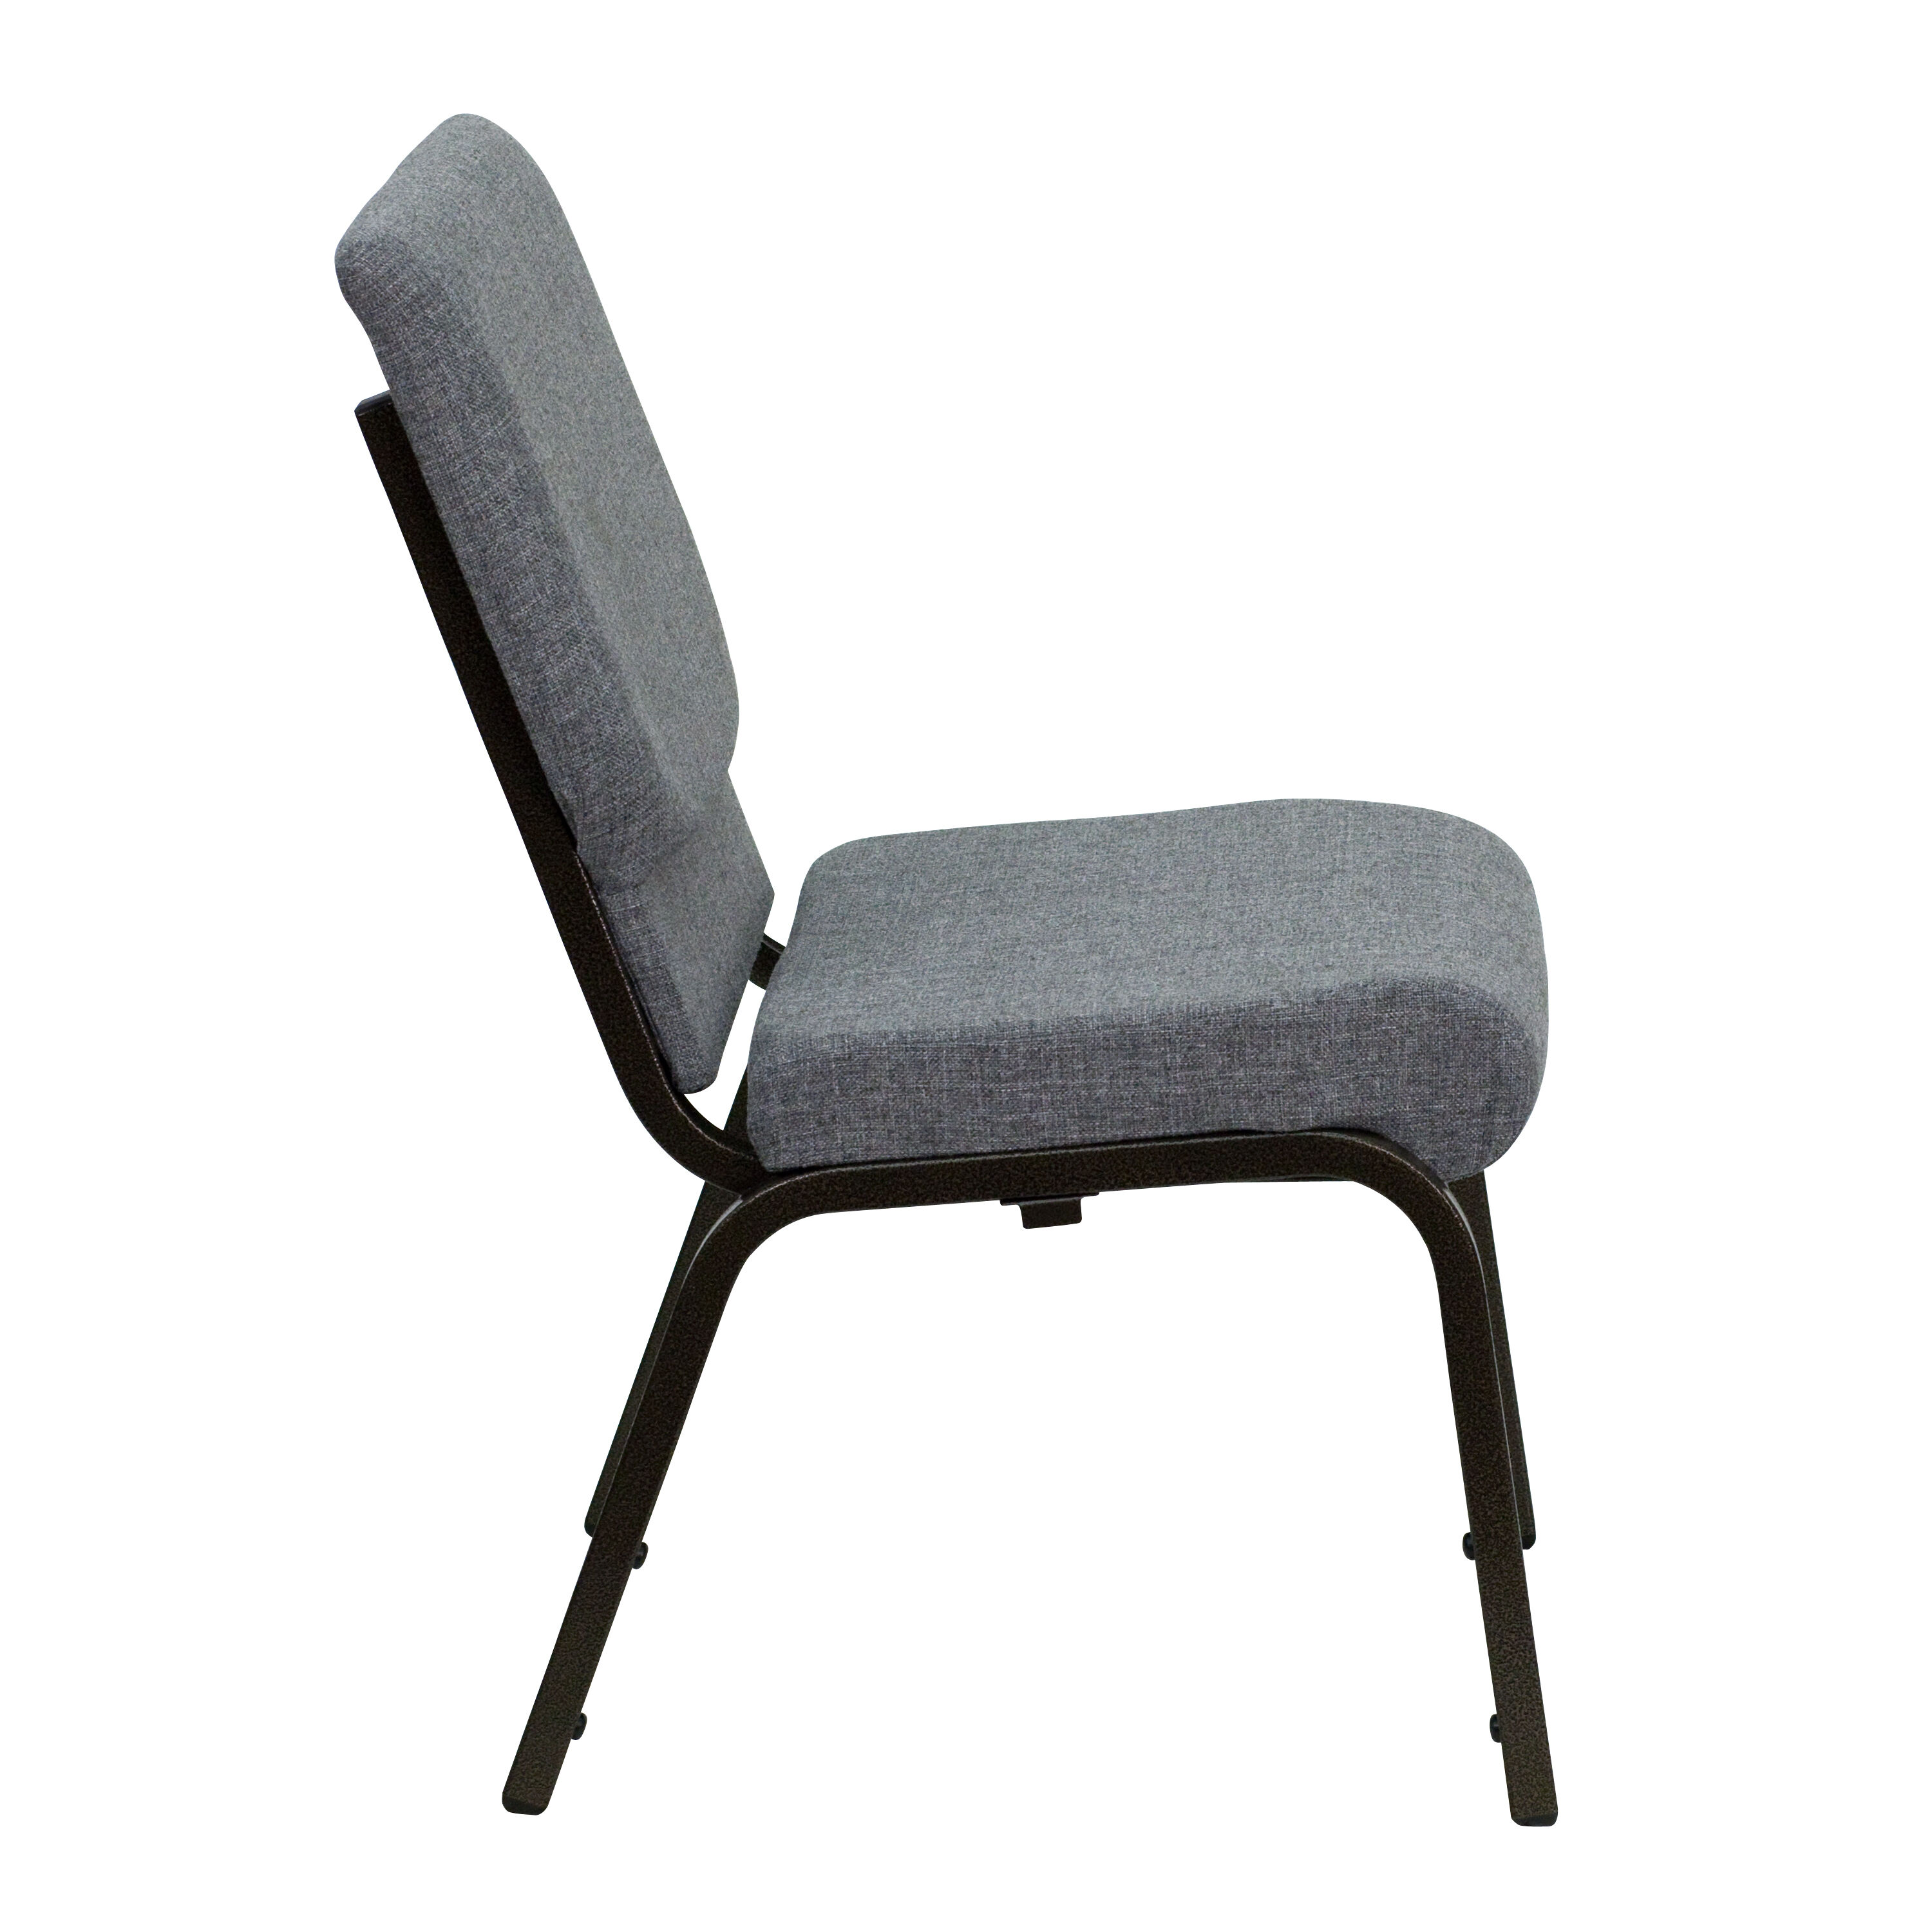 cathedral chairs anywhere chair slipcover pattern gray fabric church xu ch 60096 beijing gy gg